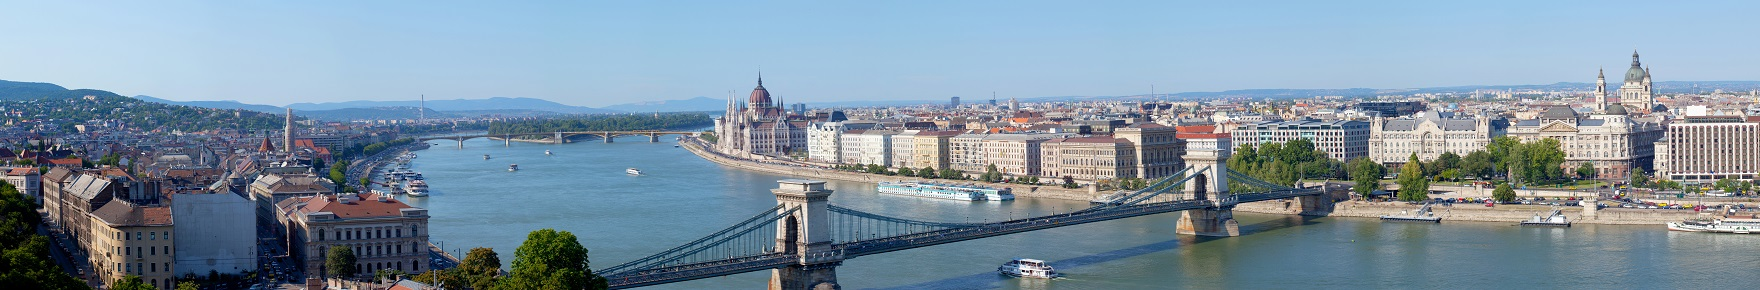 cityrama budapest gray line hungary web head dmc and passenger transportation